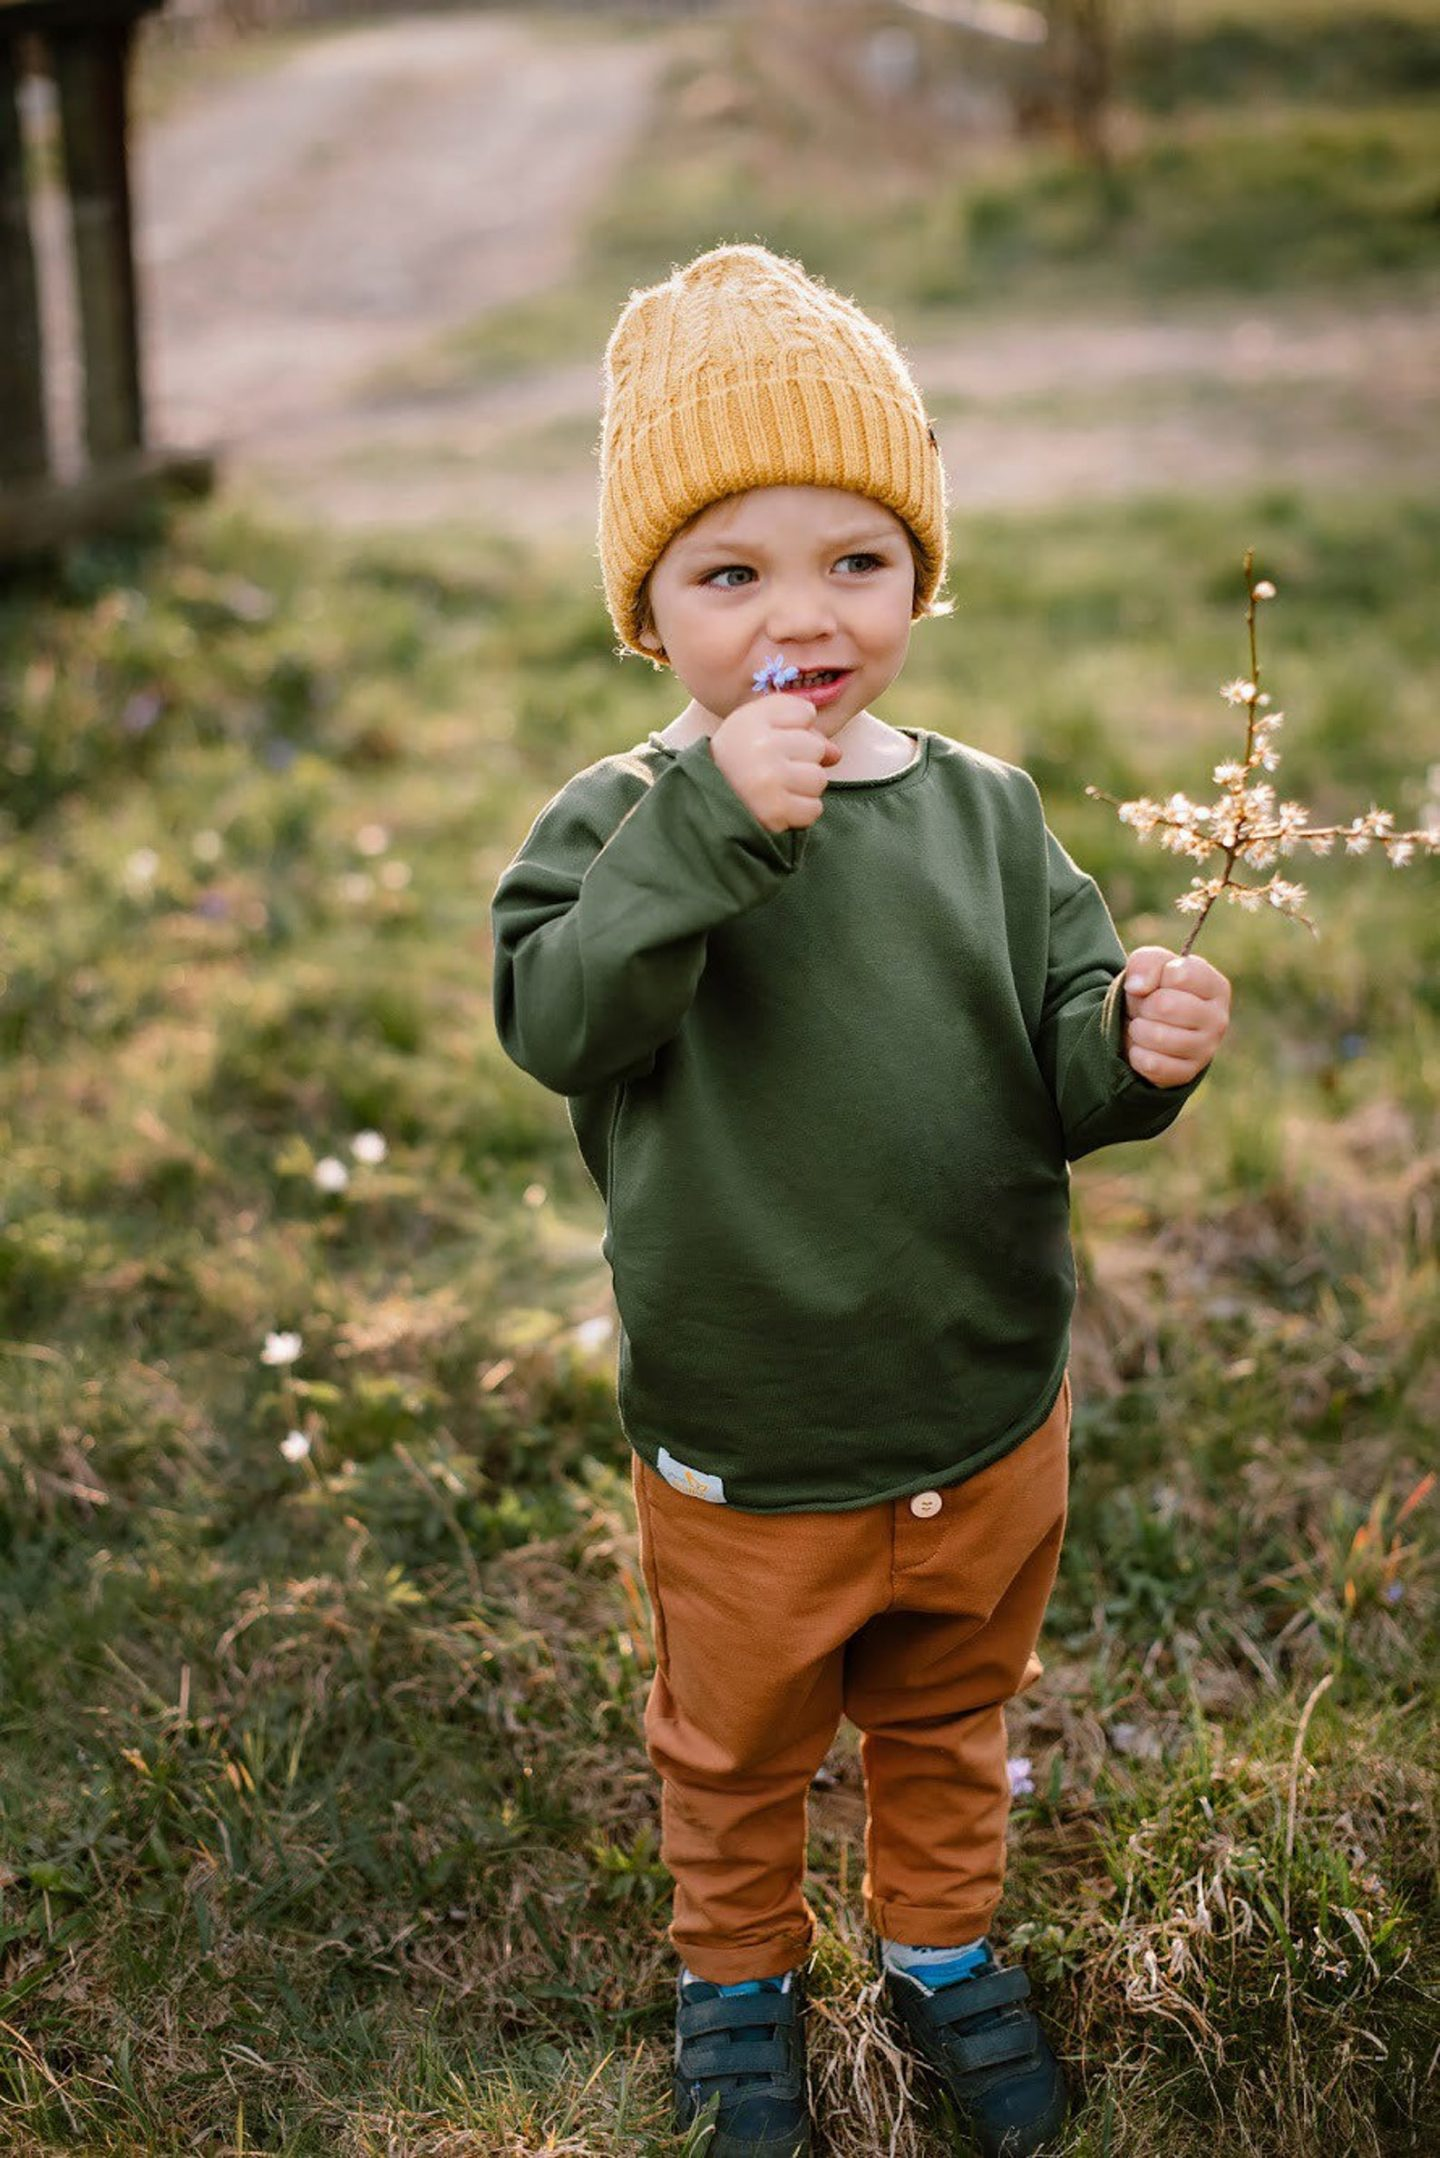 Cute Earth tones baby boy outfit idea with yellow hat